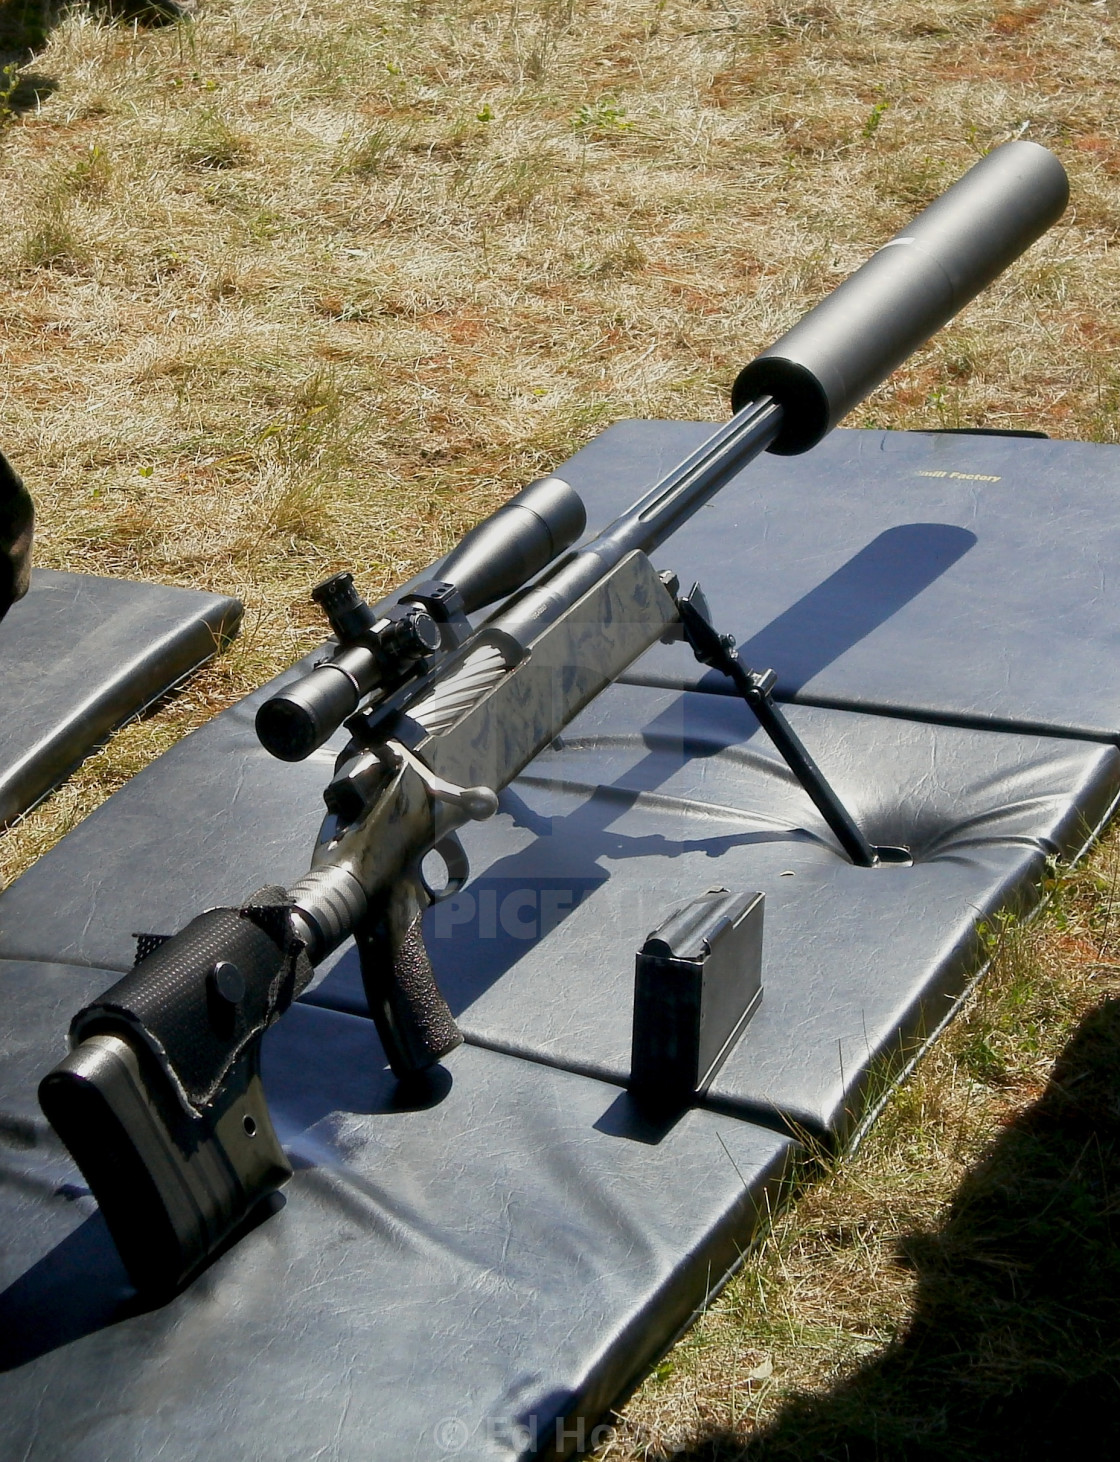 Canadian Army Sniper rifle - License, download or print for